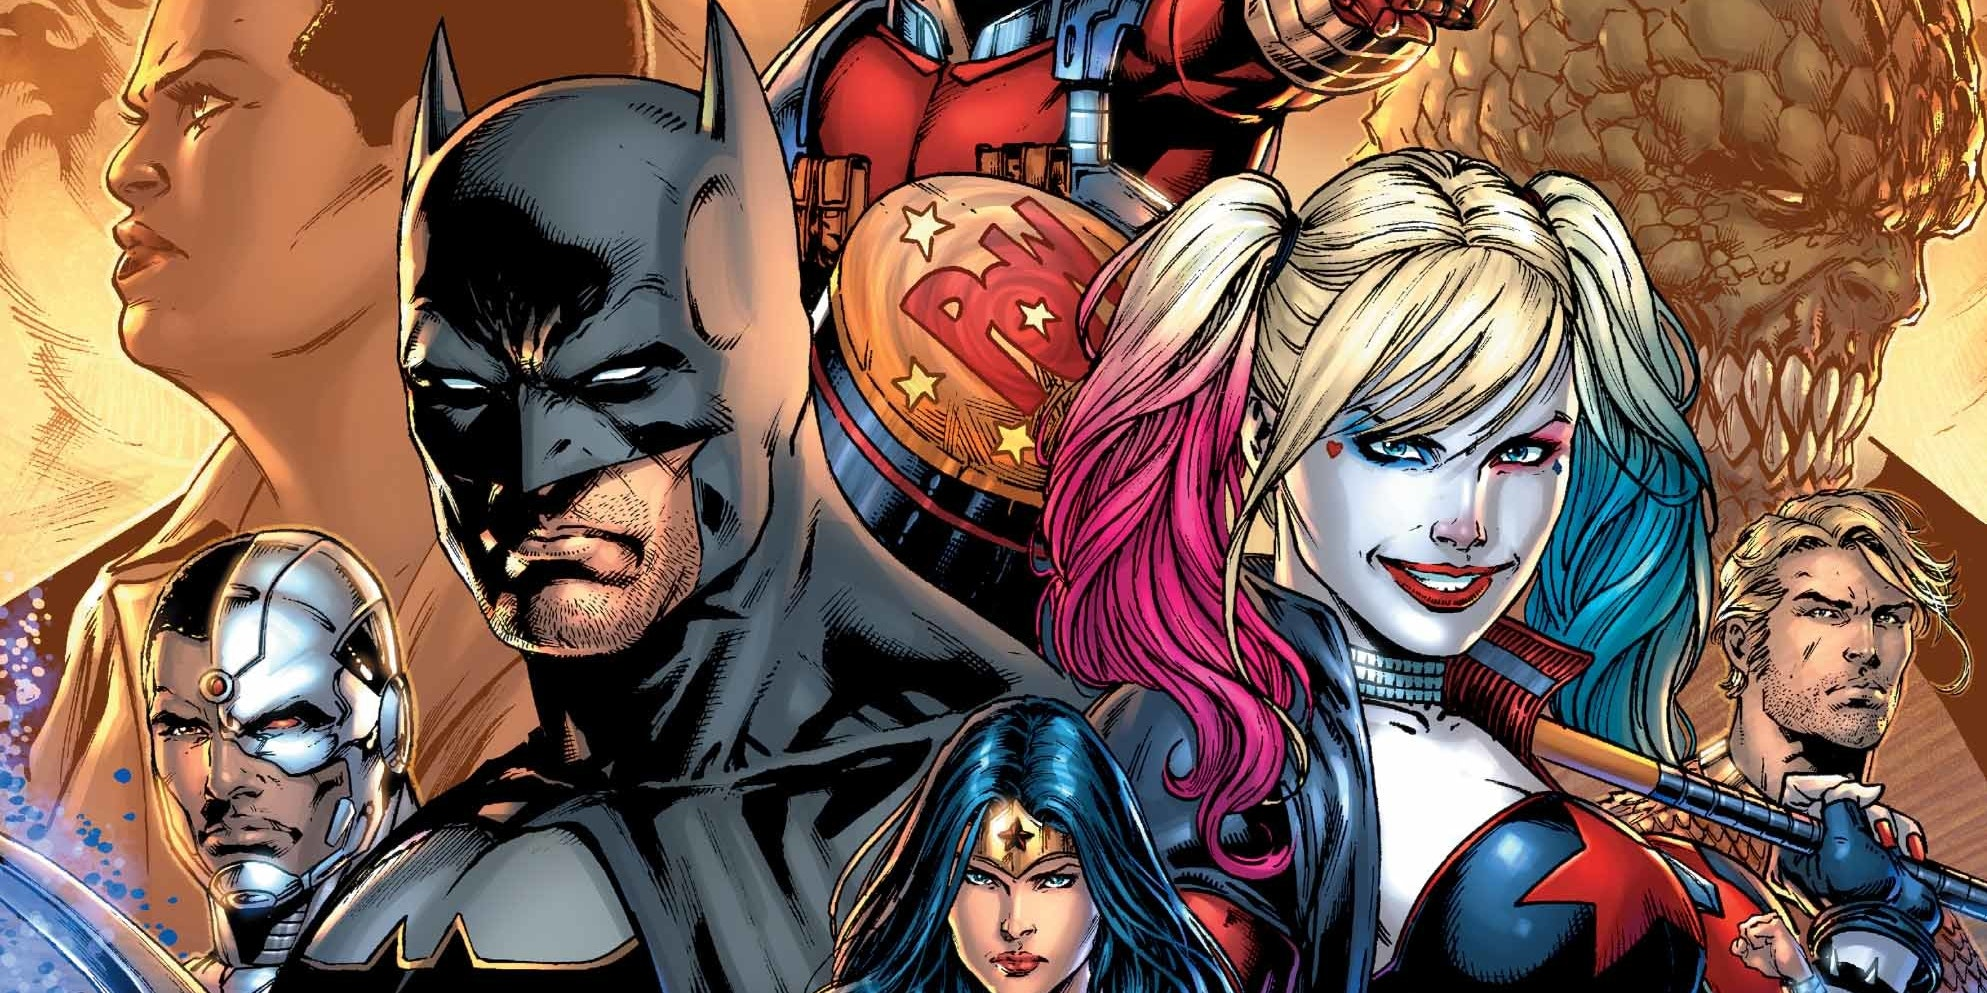 'Justice League vs. Suicide Squad' Villain Thinks Like Batman